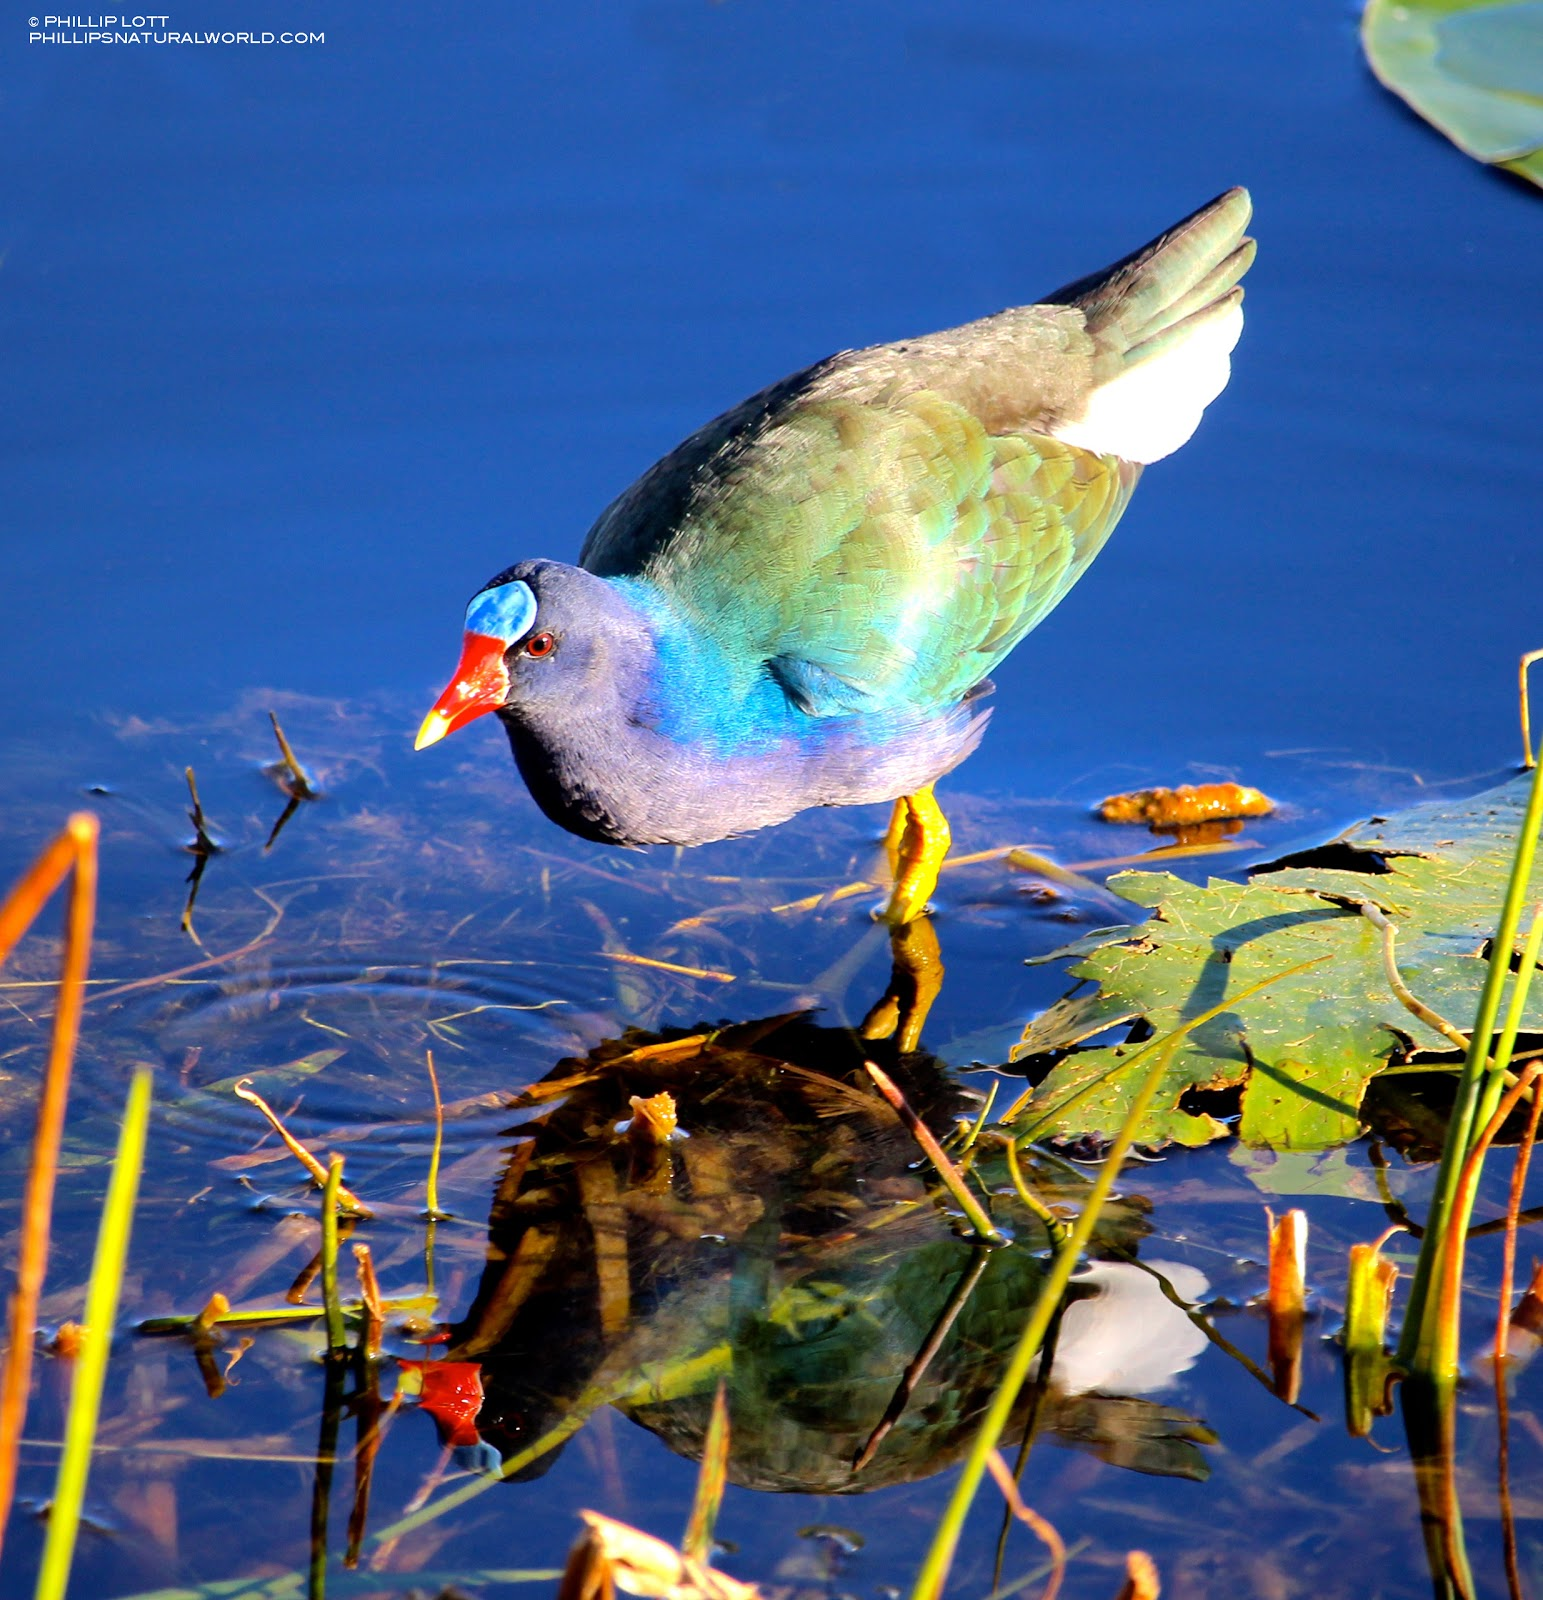 A Beautifully Colored Bird Of Southern And Tropical Wetlands The Purple Gallinule Porphyrio Martinicus Can Be Seen Walking On Top Floating Vegetation